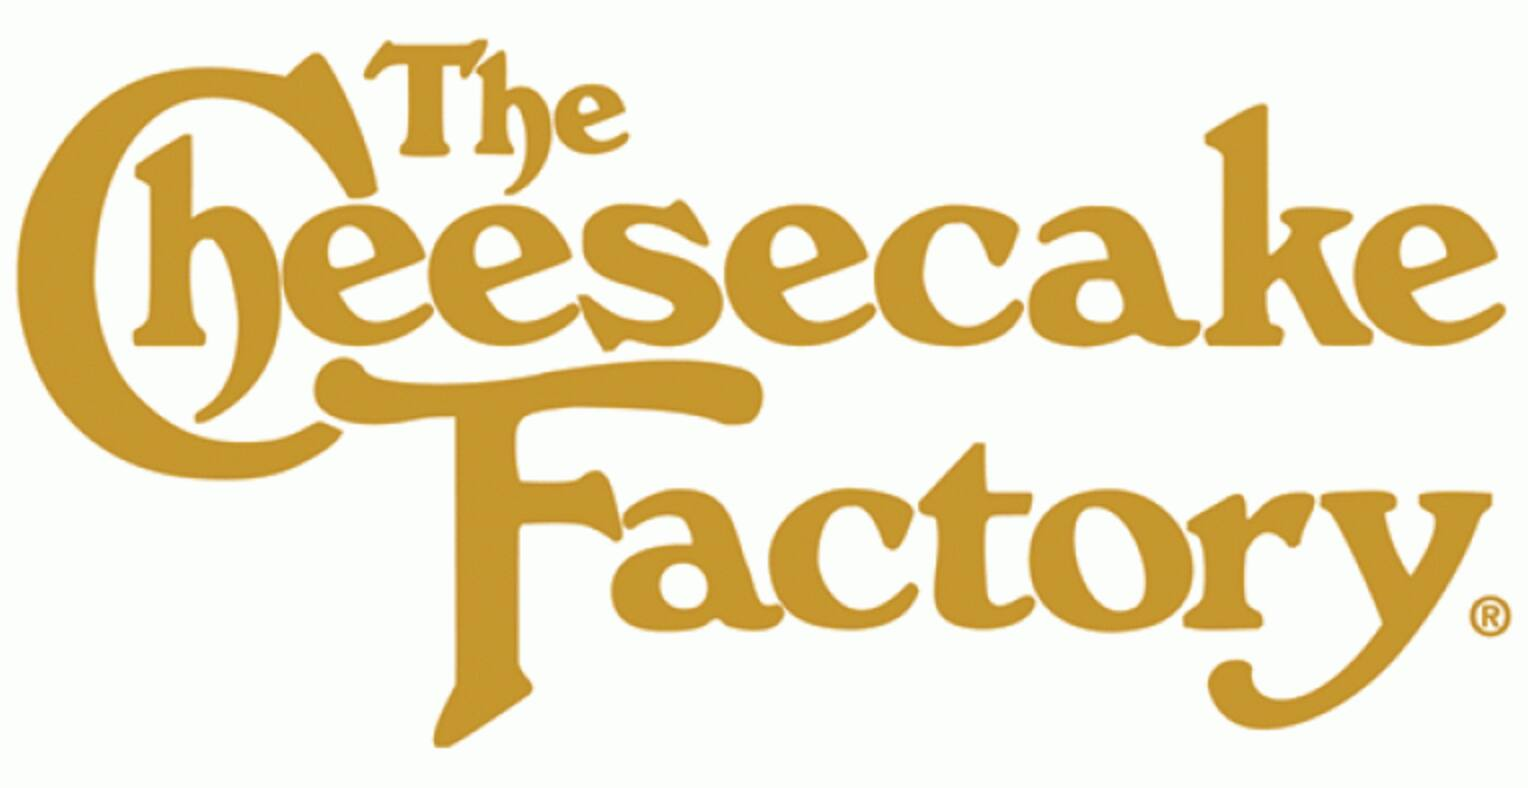 The Cheesecake Factory via DoorDash: One Slice of Cheesecake - Page on